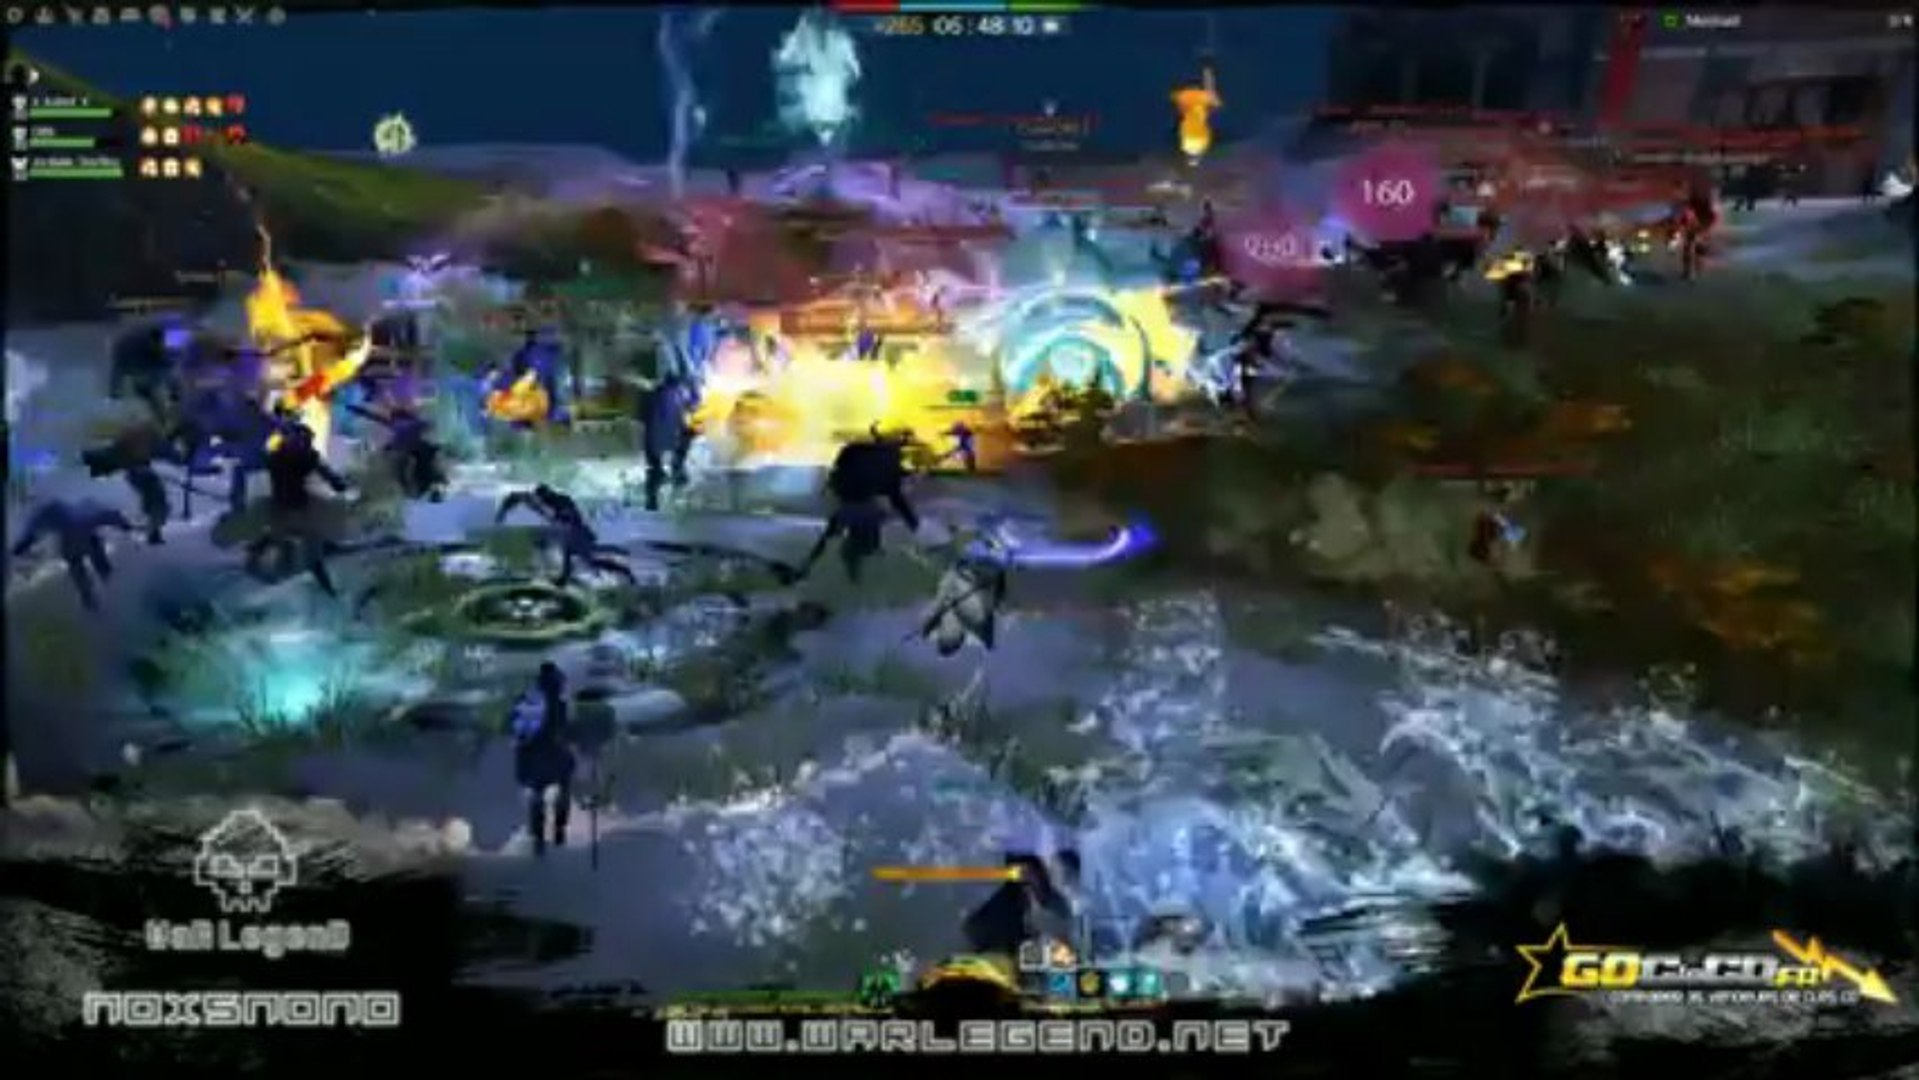 BattleStar WaR LegenD Guild Wars 2 - 03-04-2013